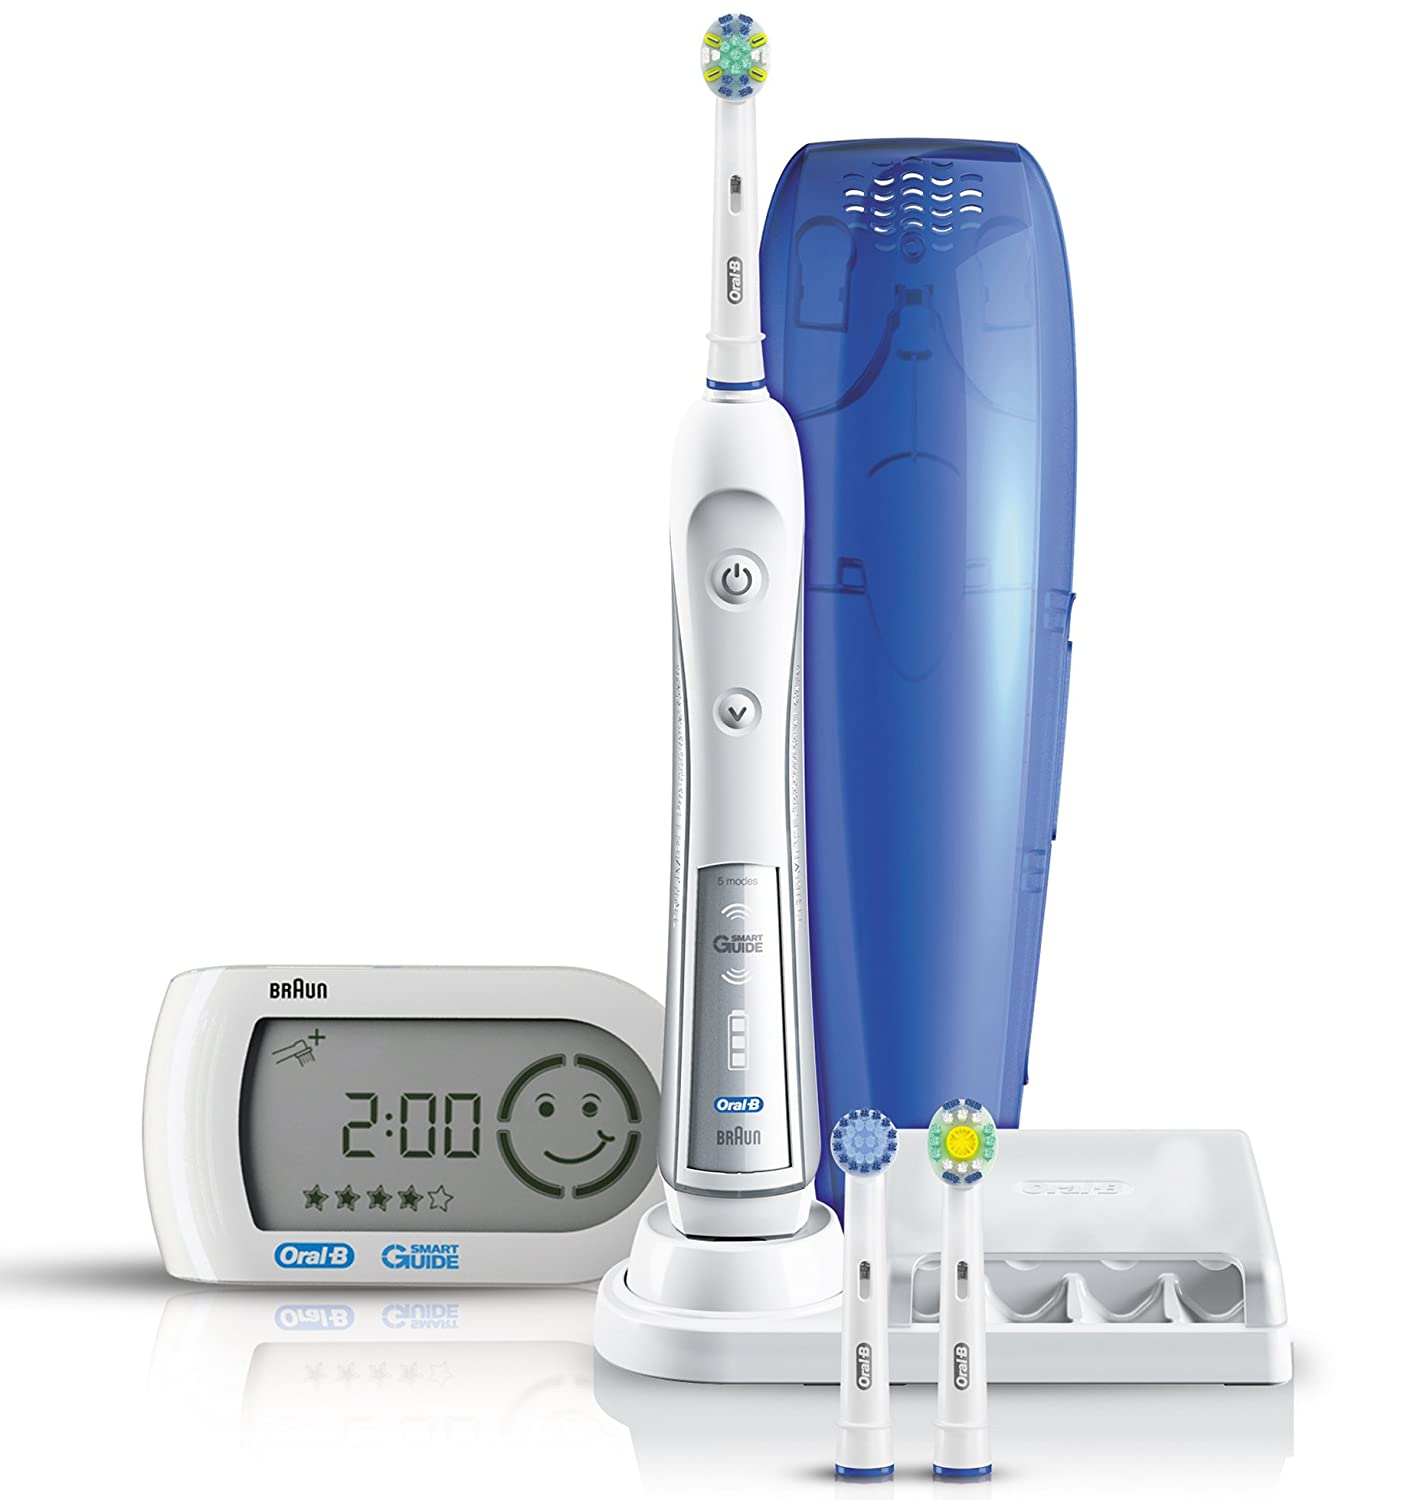 Braun Oral-B Triumph 5000 Five-Mode Power Toothbrush with Wireless Smart  Guide  Amazon.co.uk  Health   Personal Care 130de8970269